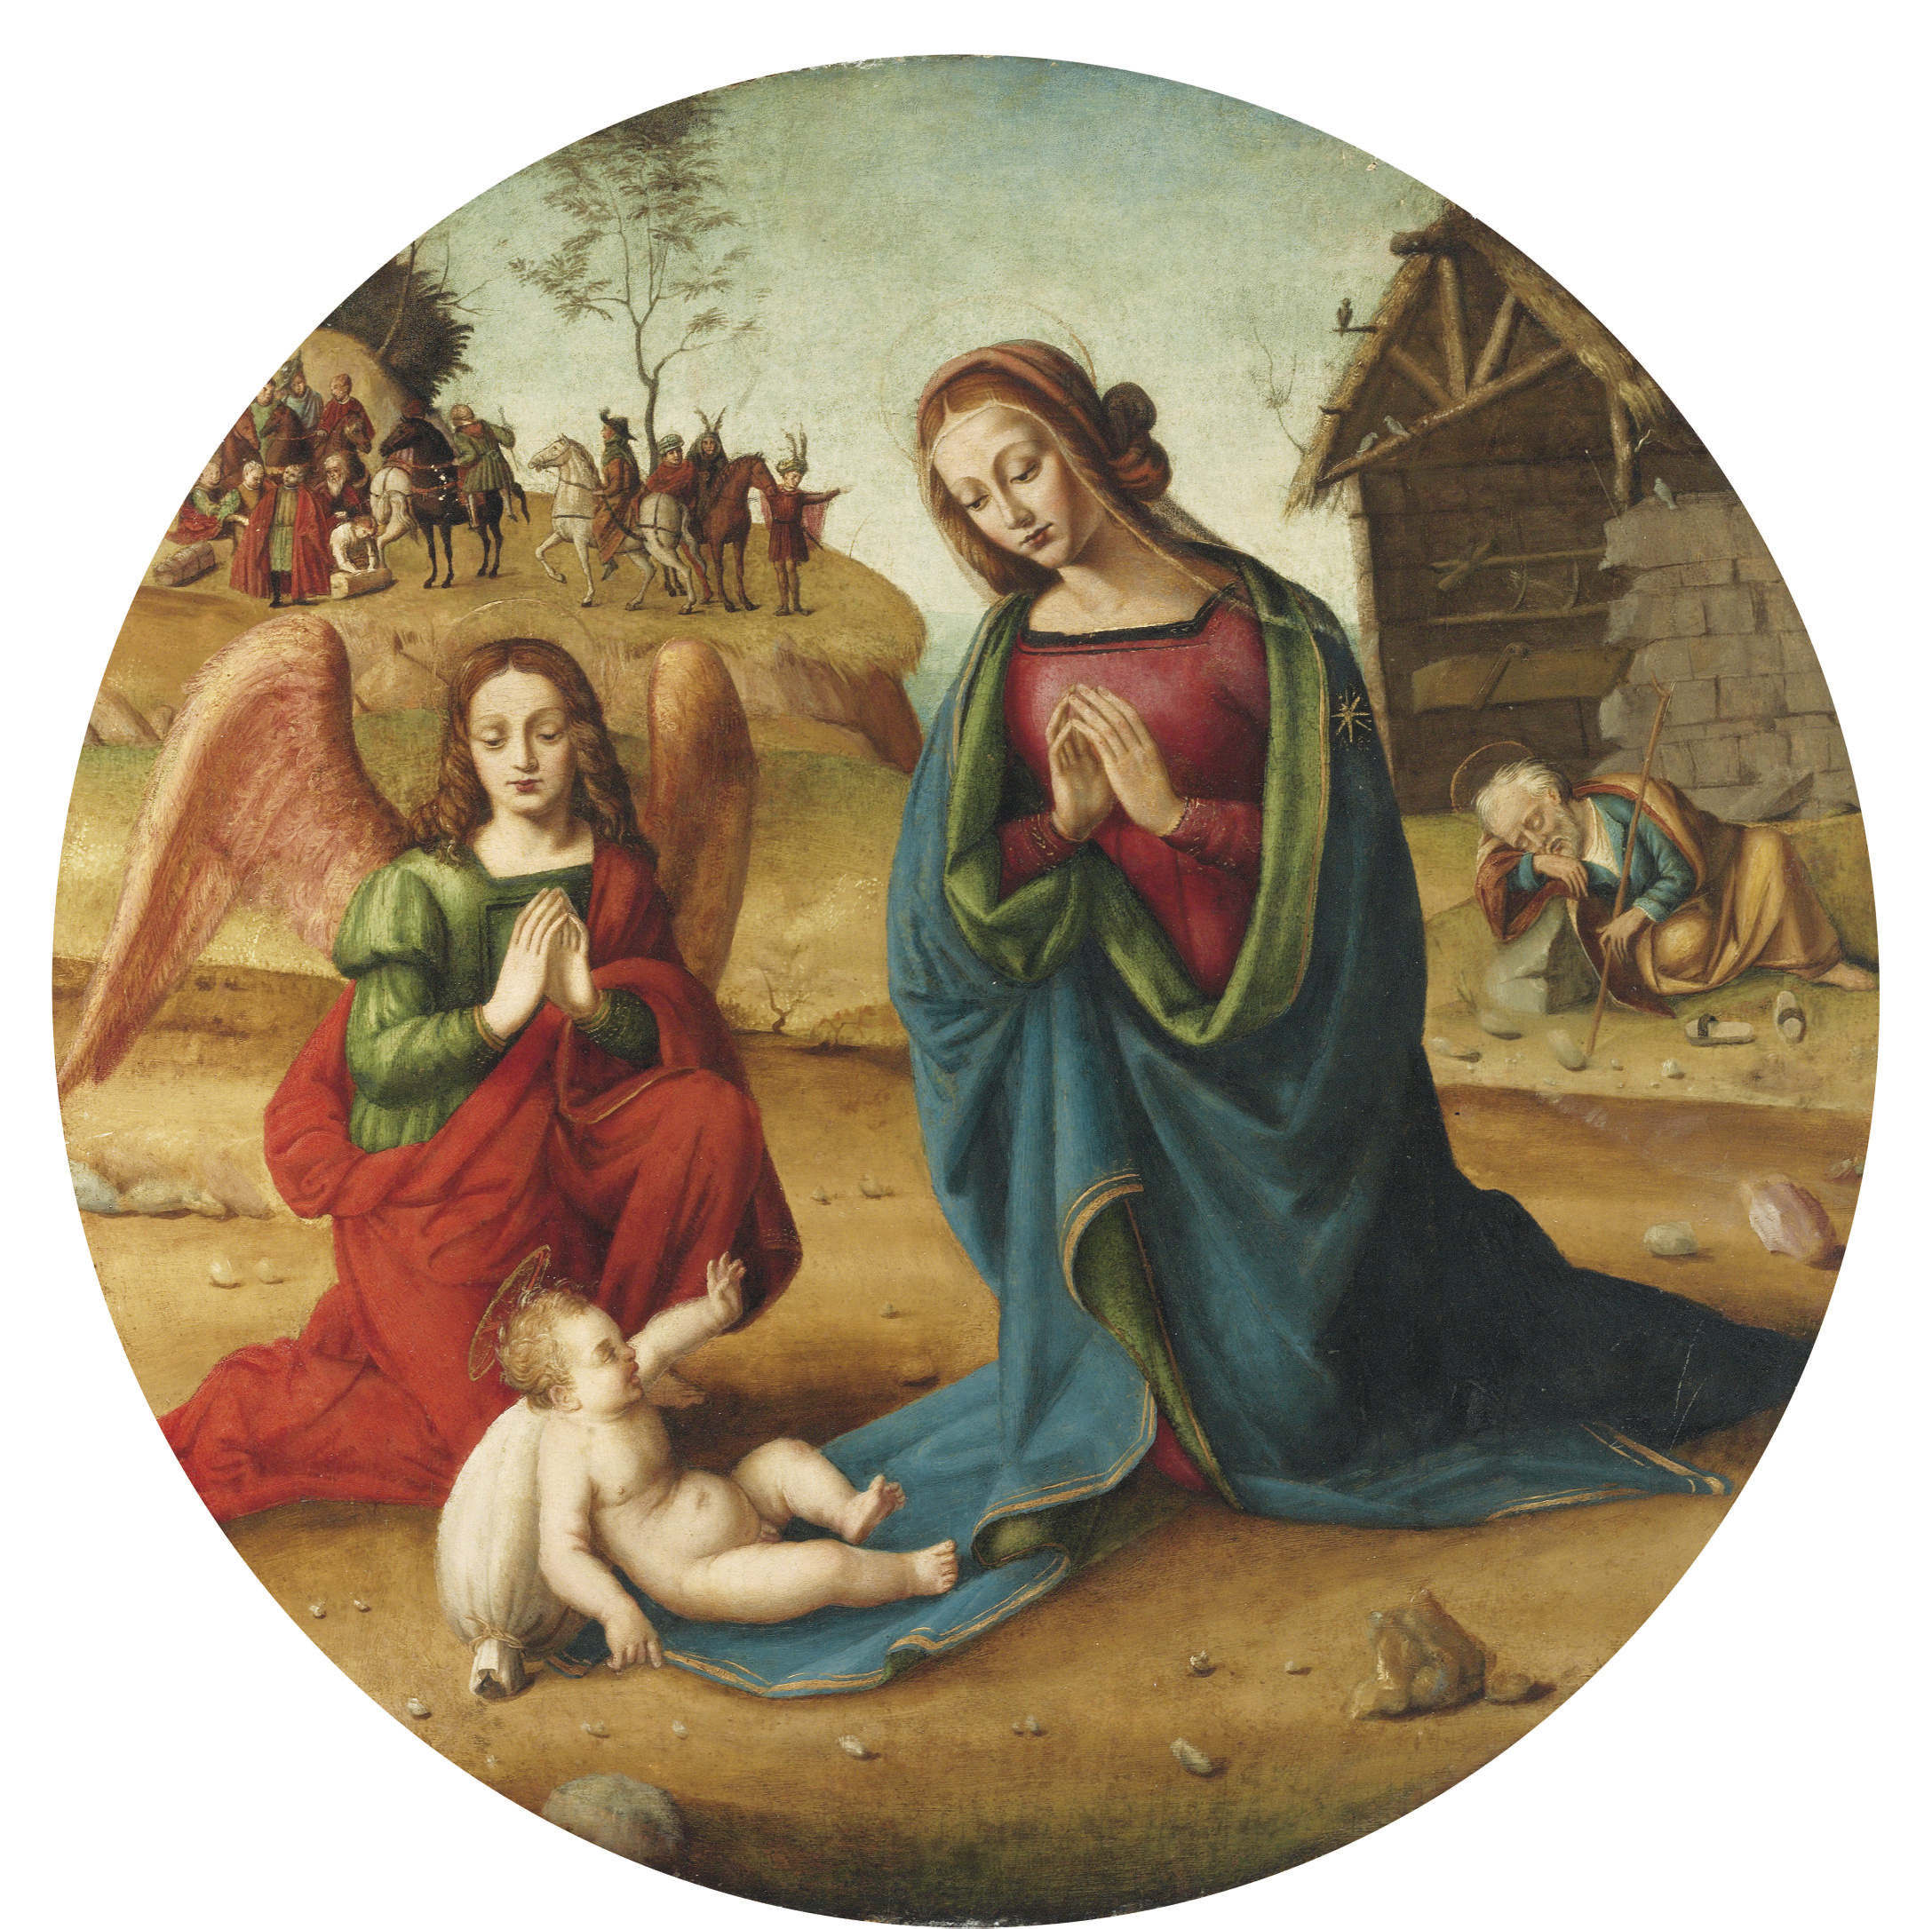 The Holy Family with an adoring Angel, the manger and the retinue of the Magi beyond